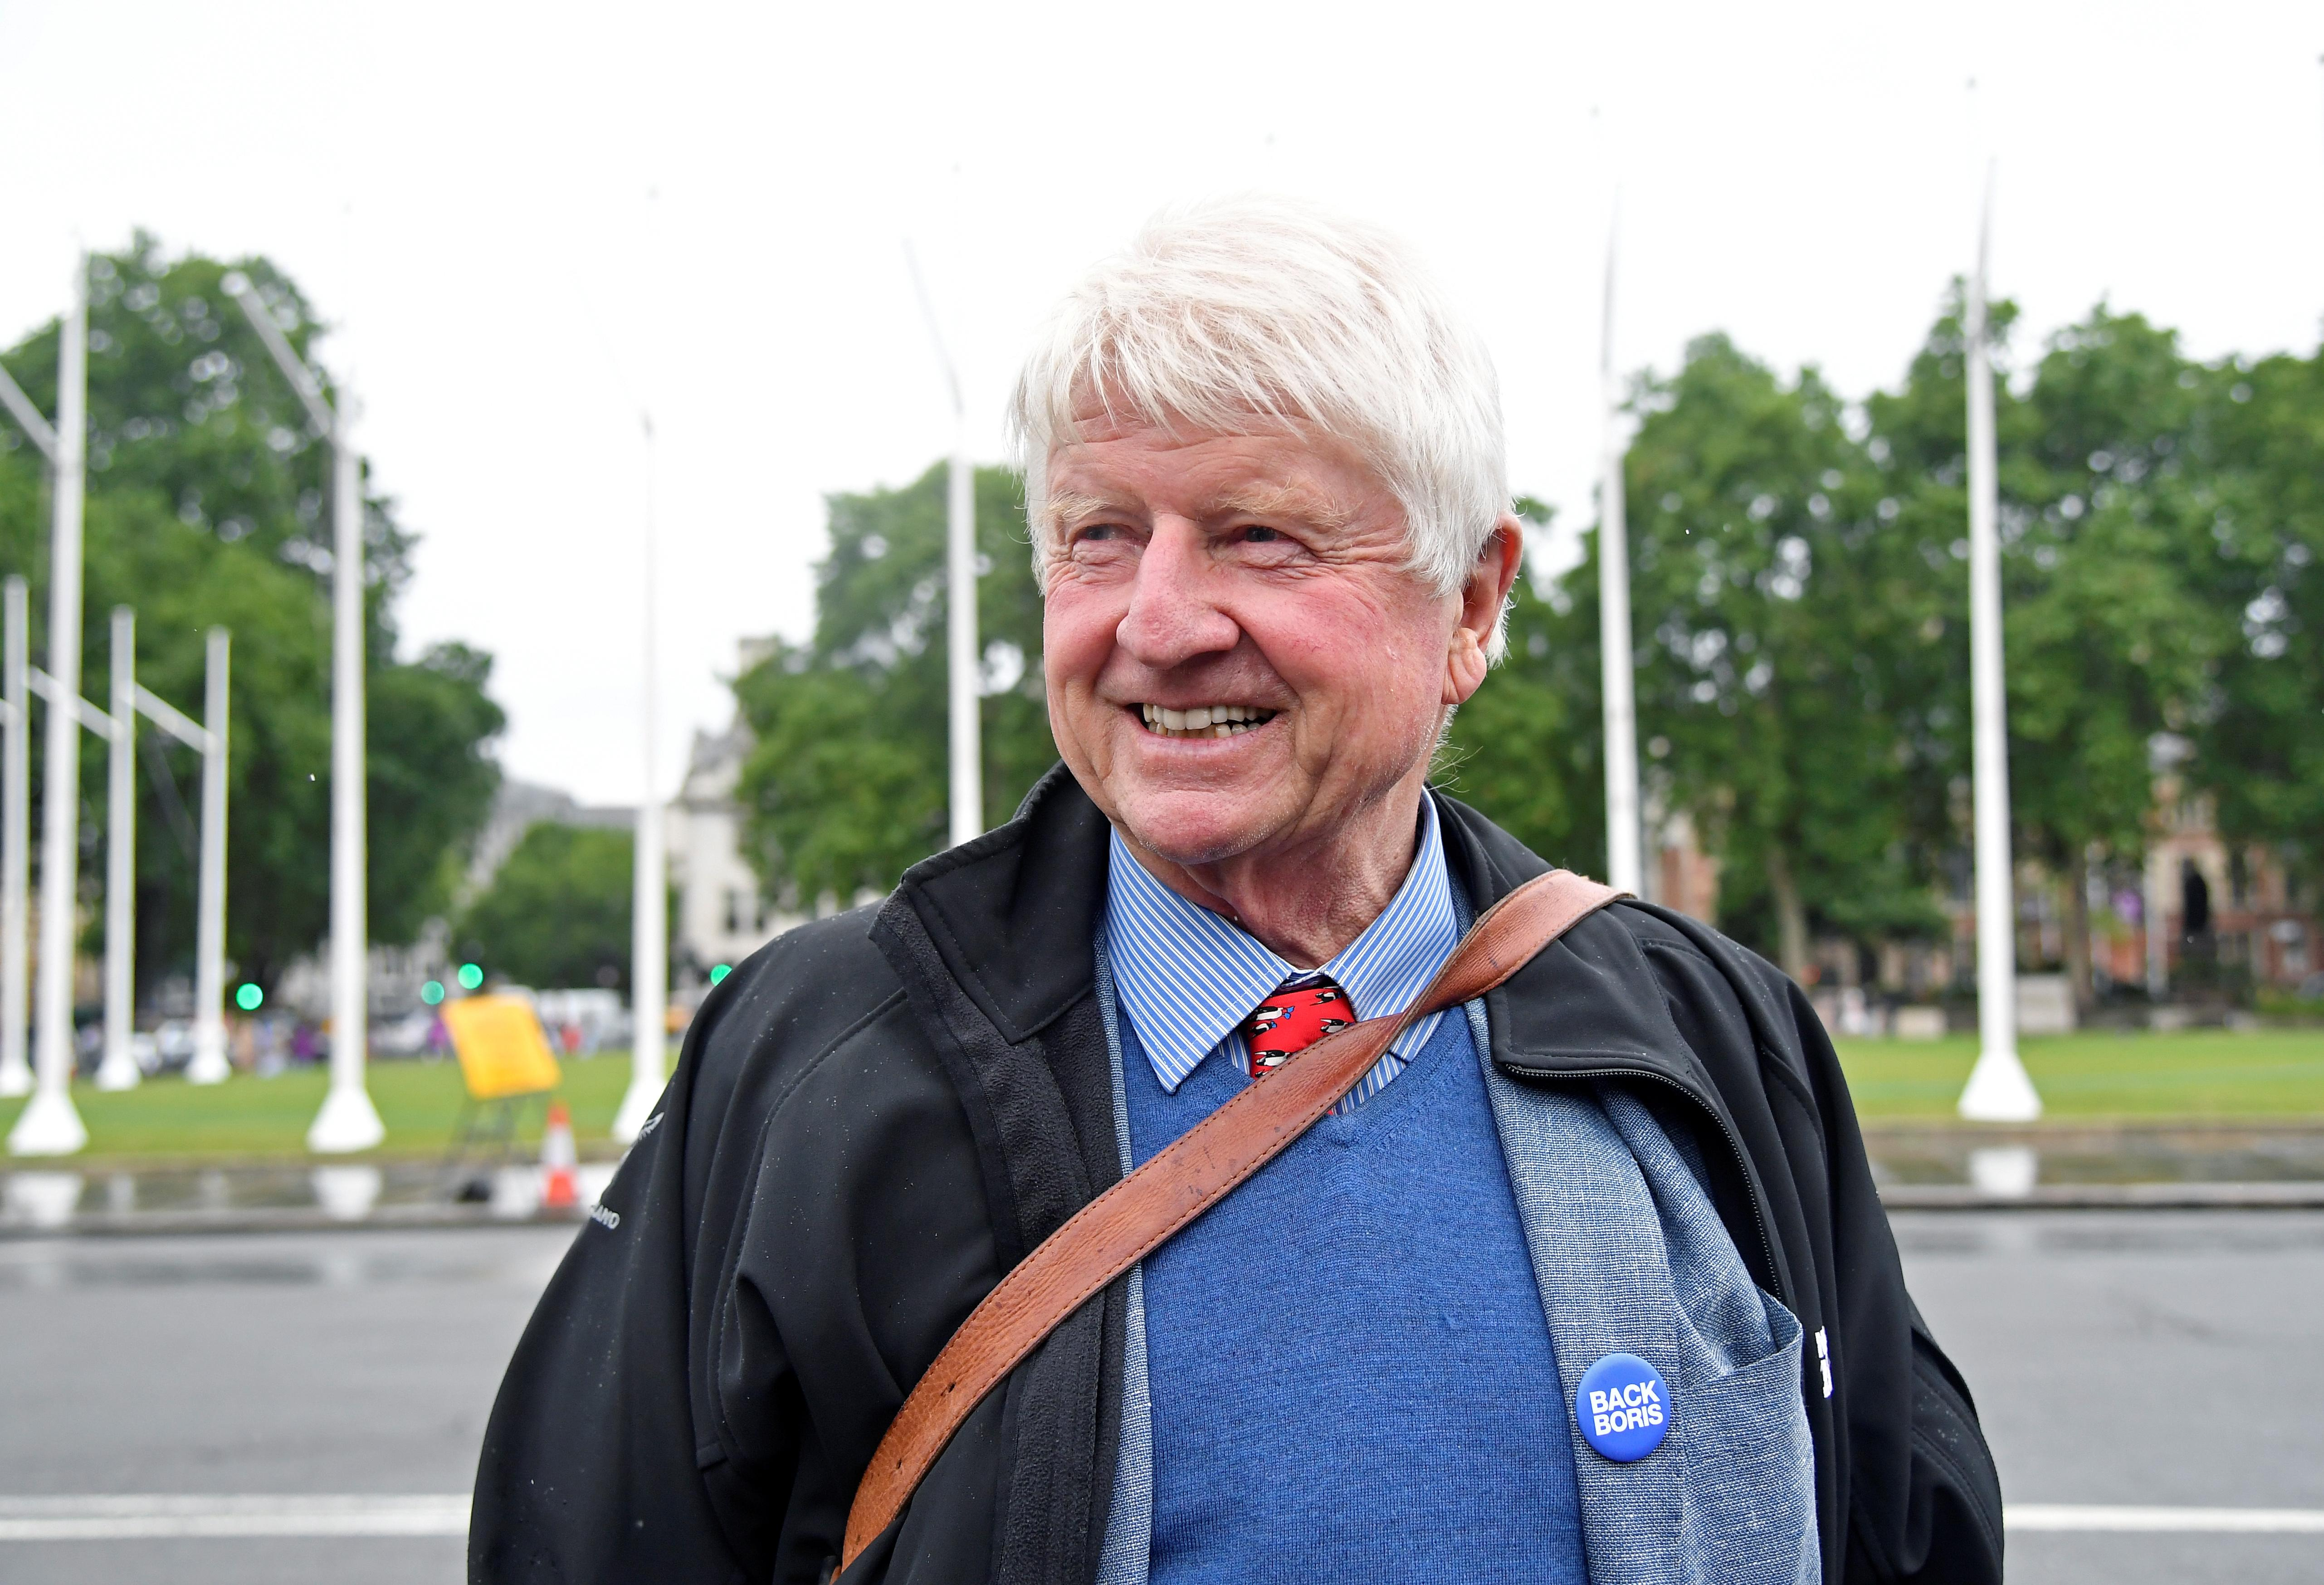 Stanley Johnson in awkward TV stand-off for saying female fighter pilots 'shouldn't wear burkas'